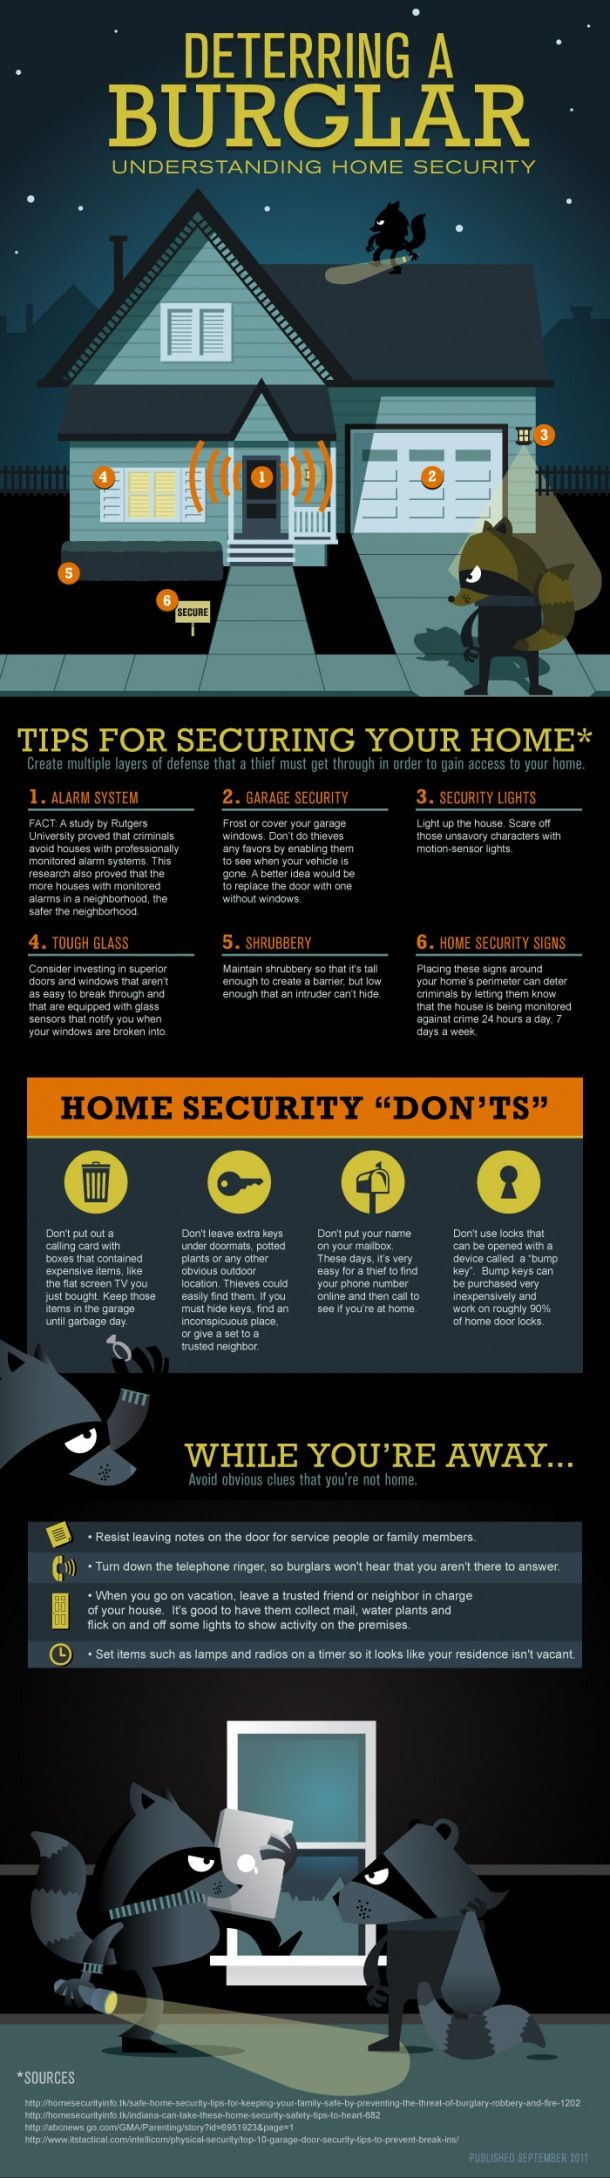 Deterring A Burglar: Understanding Home Security [INFOGRAPHIC] | Summerlin Security Home & Office | Join us on facebook http://on.fb.me/JgZbgX | Pinned by Summerlin Security